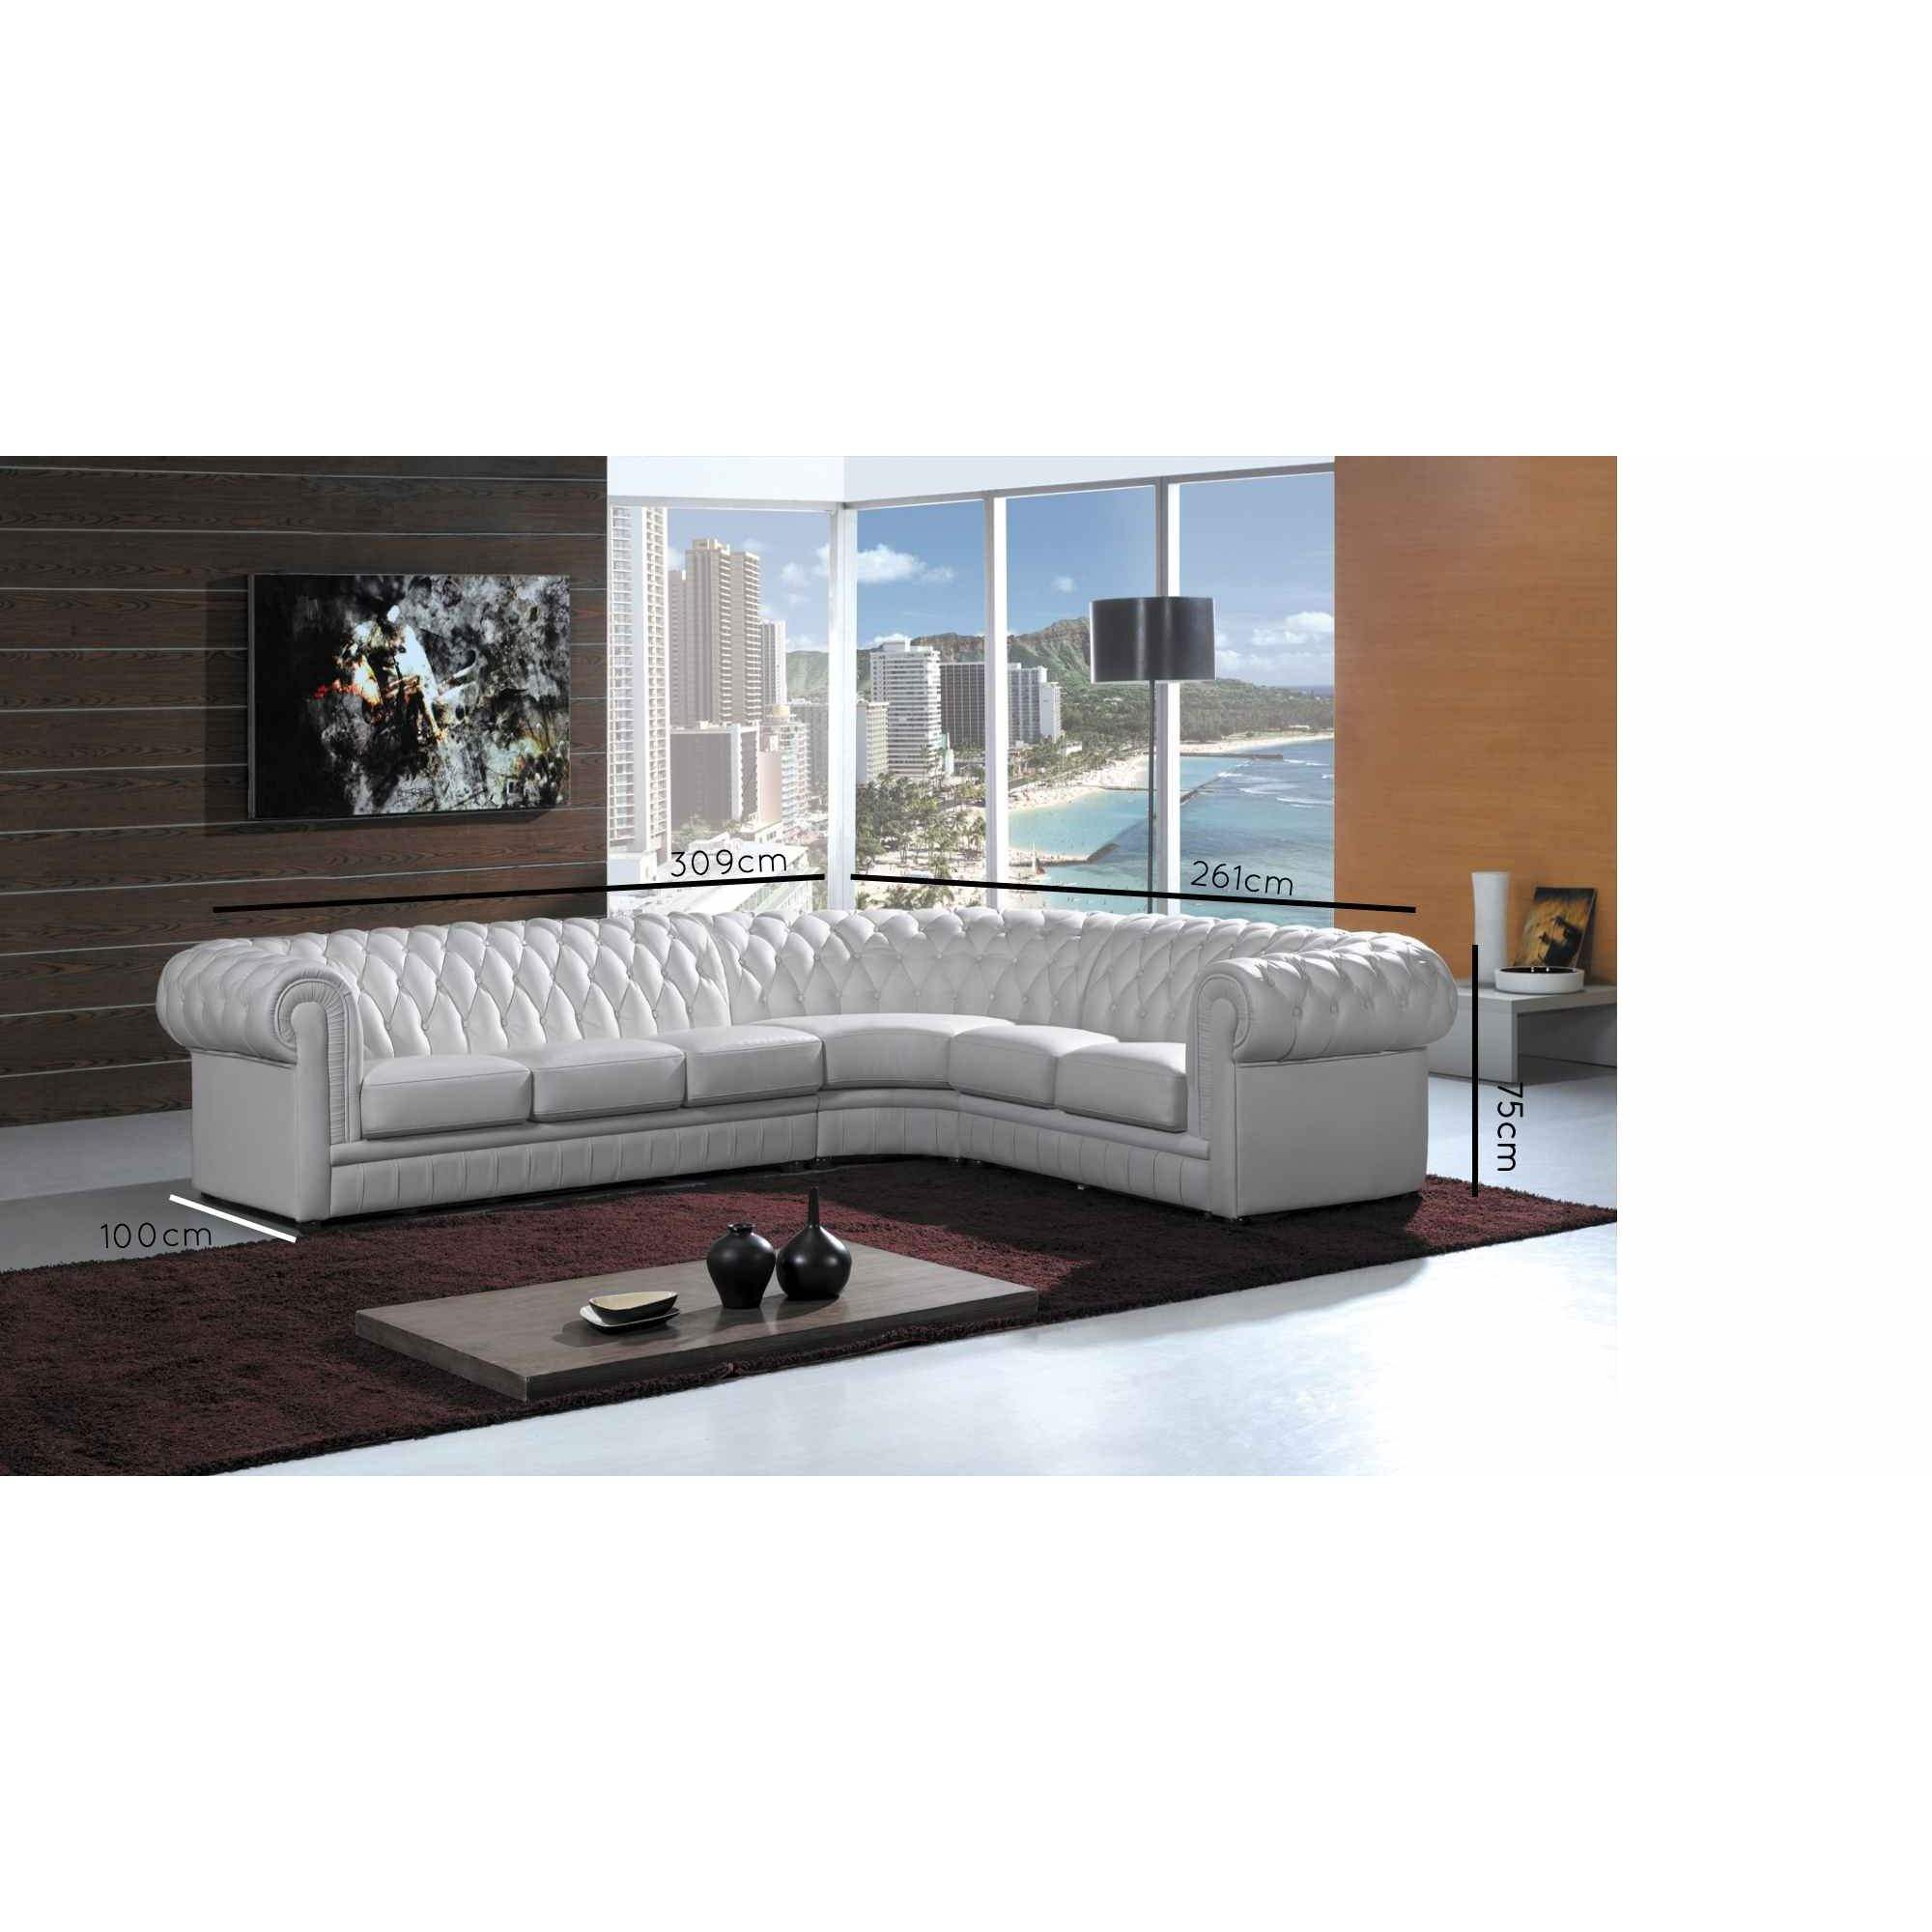 Deco in paris grand canape d angle capitonne blanc for Canape chesterfield cuir blanc